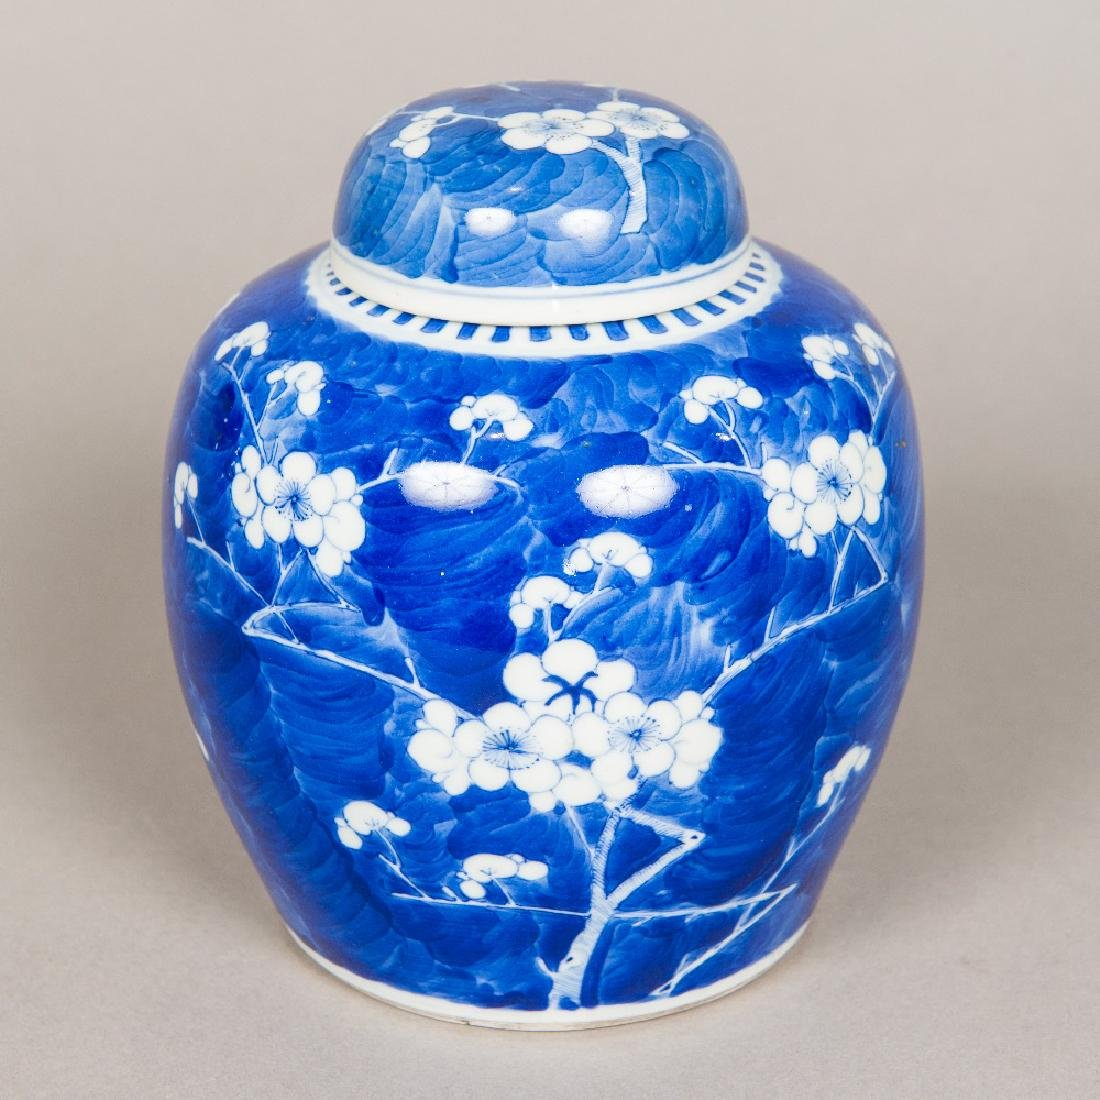 A 19th century Chinese blue and white ginger jar and